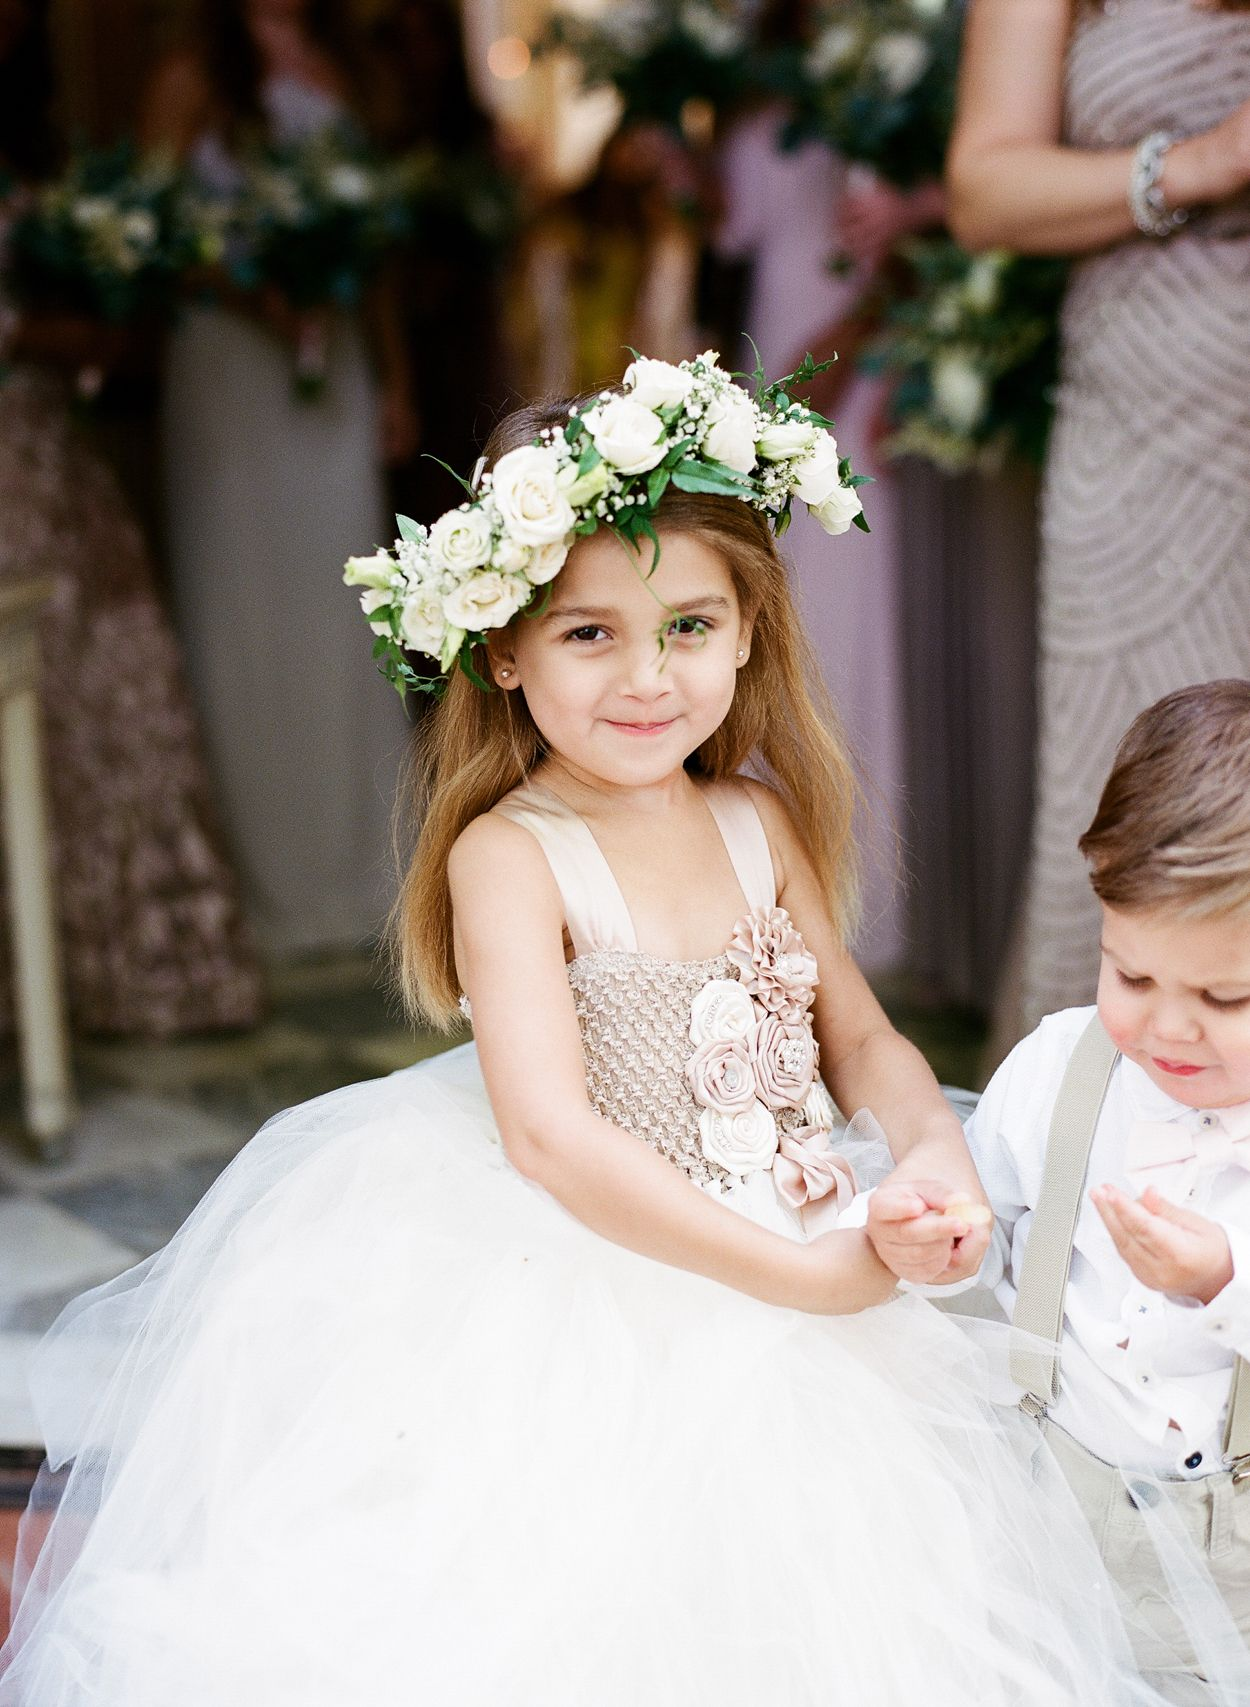 Flower Girl With A Cute Flower Crown Flower Girls Ring Bearers